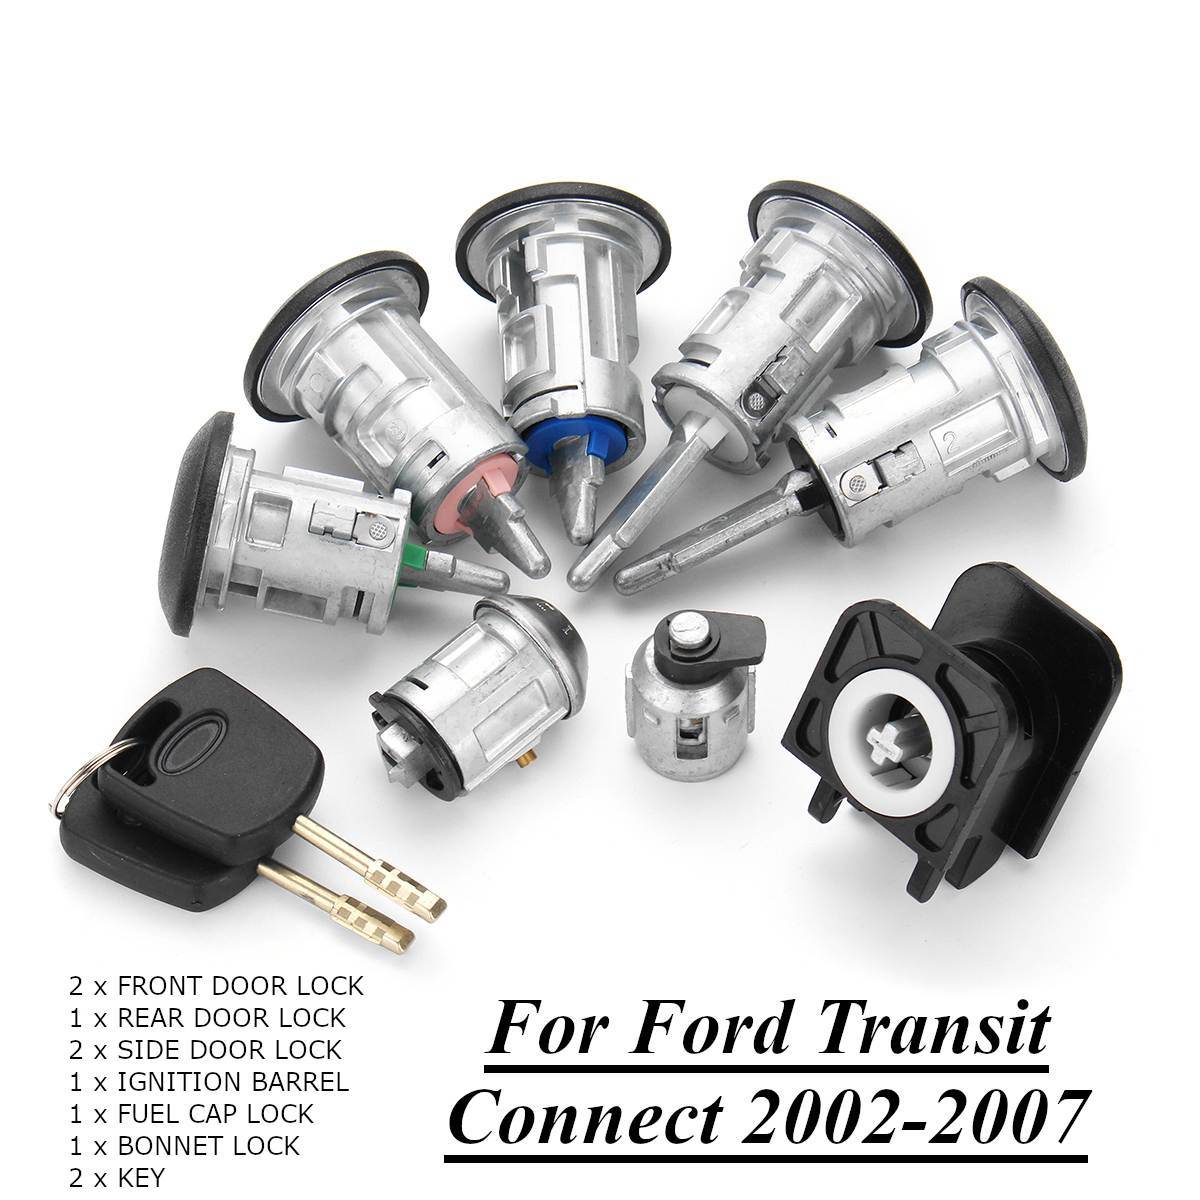 8pcs Ignition Switch Front + Rear Door Lock Bonnet Set with 2 Keys for Ford Transit Connect 2002-2007 44251348pcs Ignition Switch Front + Rear Door Lock Bonnet Set with 2 Keys for Ford Transit Connect 2002-2007 4425134